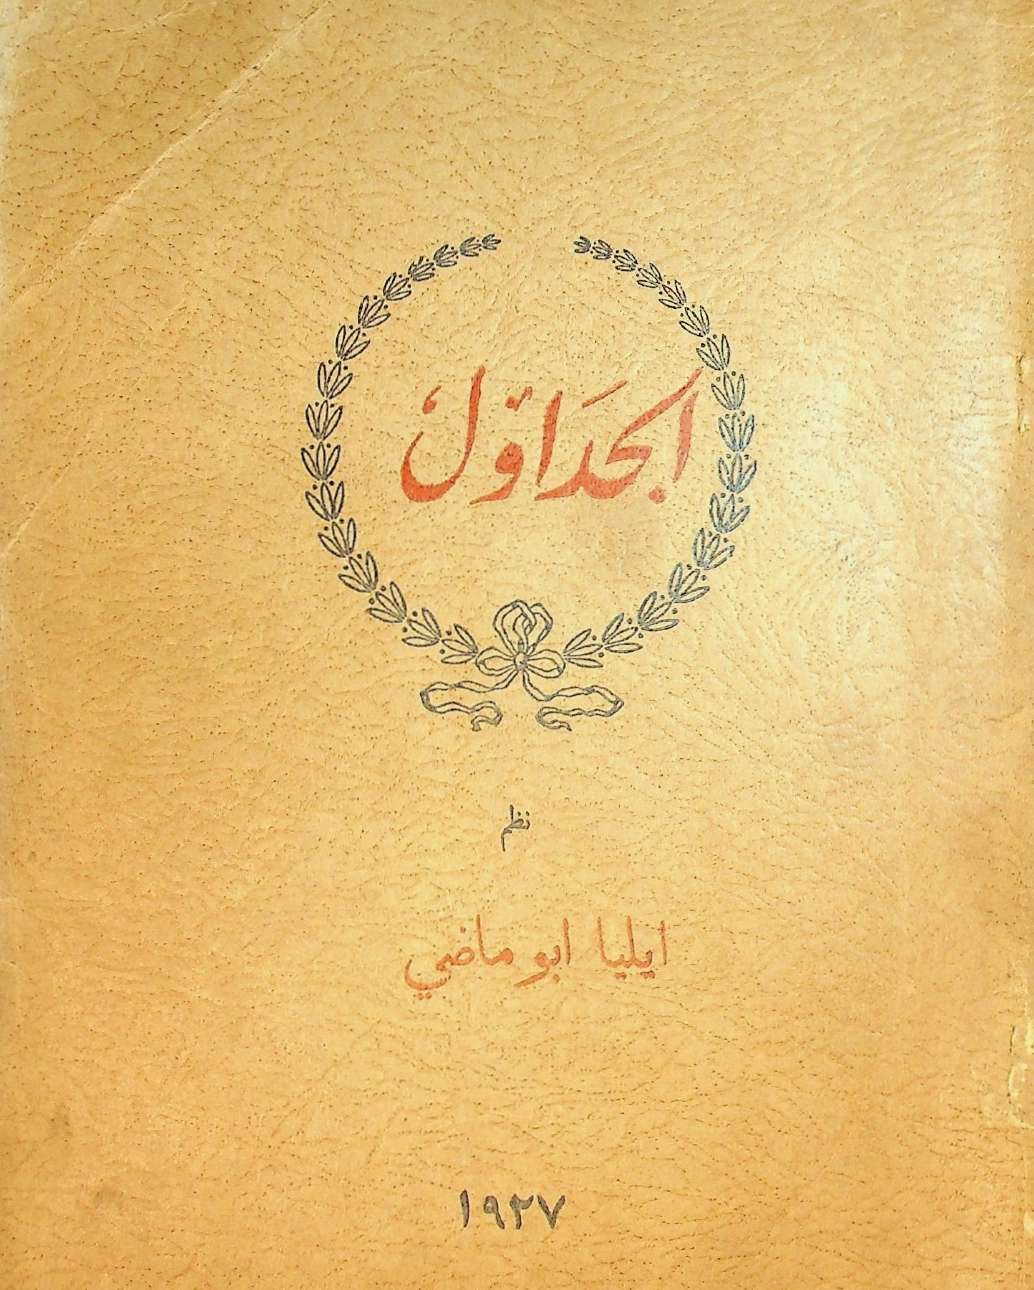 Elia Abu Madi, Al-Jadawil (The Streams), with an introduction by Mikhail Naimy and drawings by Kahlil Gibran, New York: Mir'at al-Gharb al-Yawmiyyah, 1927.